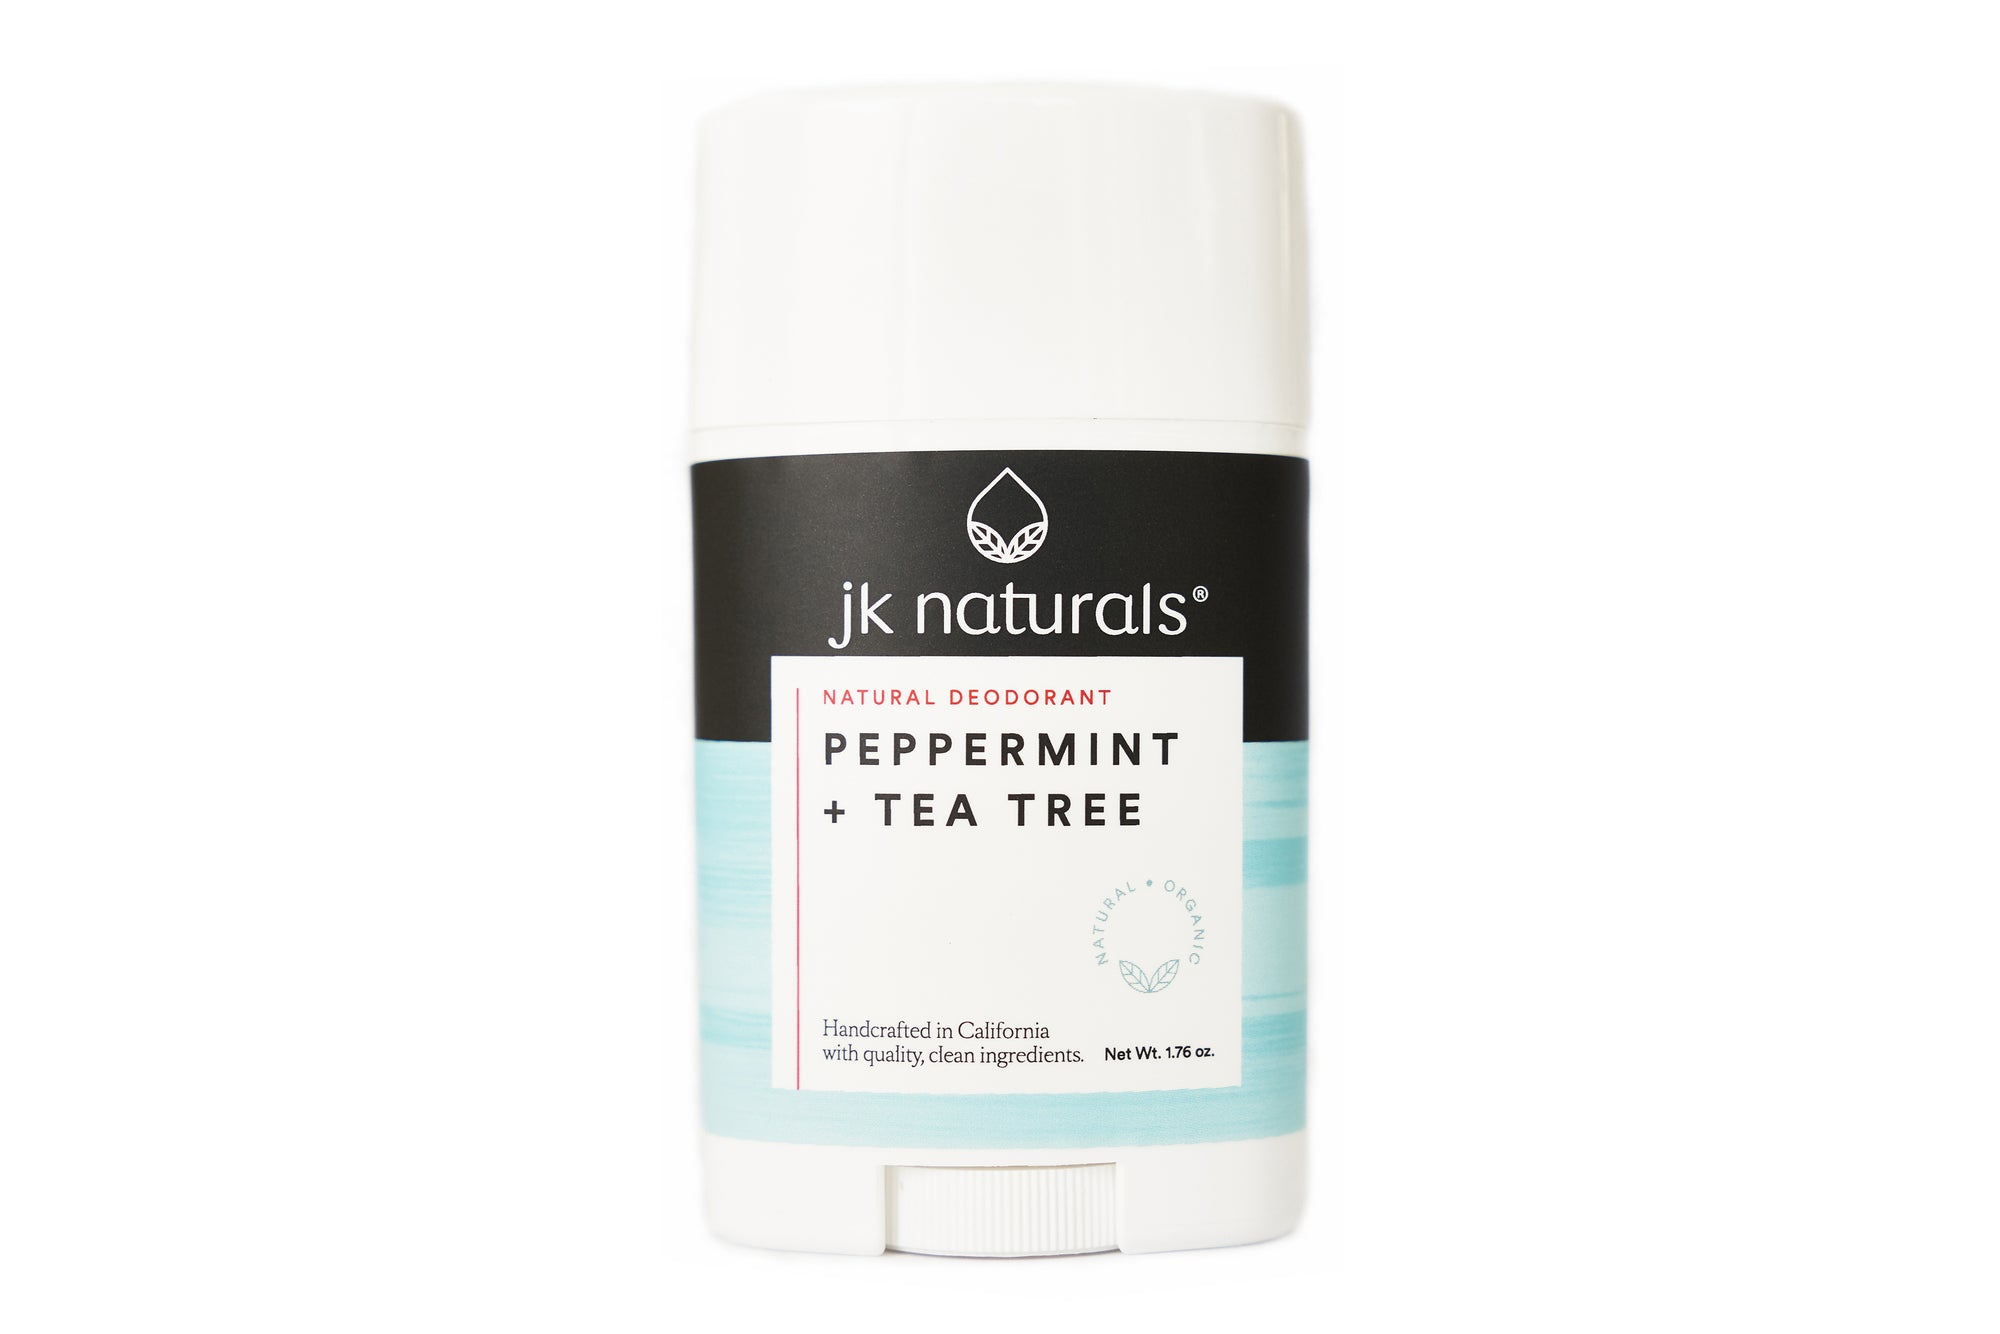 Best Natural Deodorant Stick | Peppermint + Tea Tree